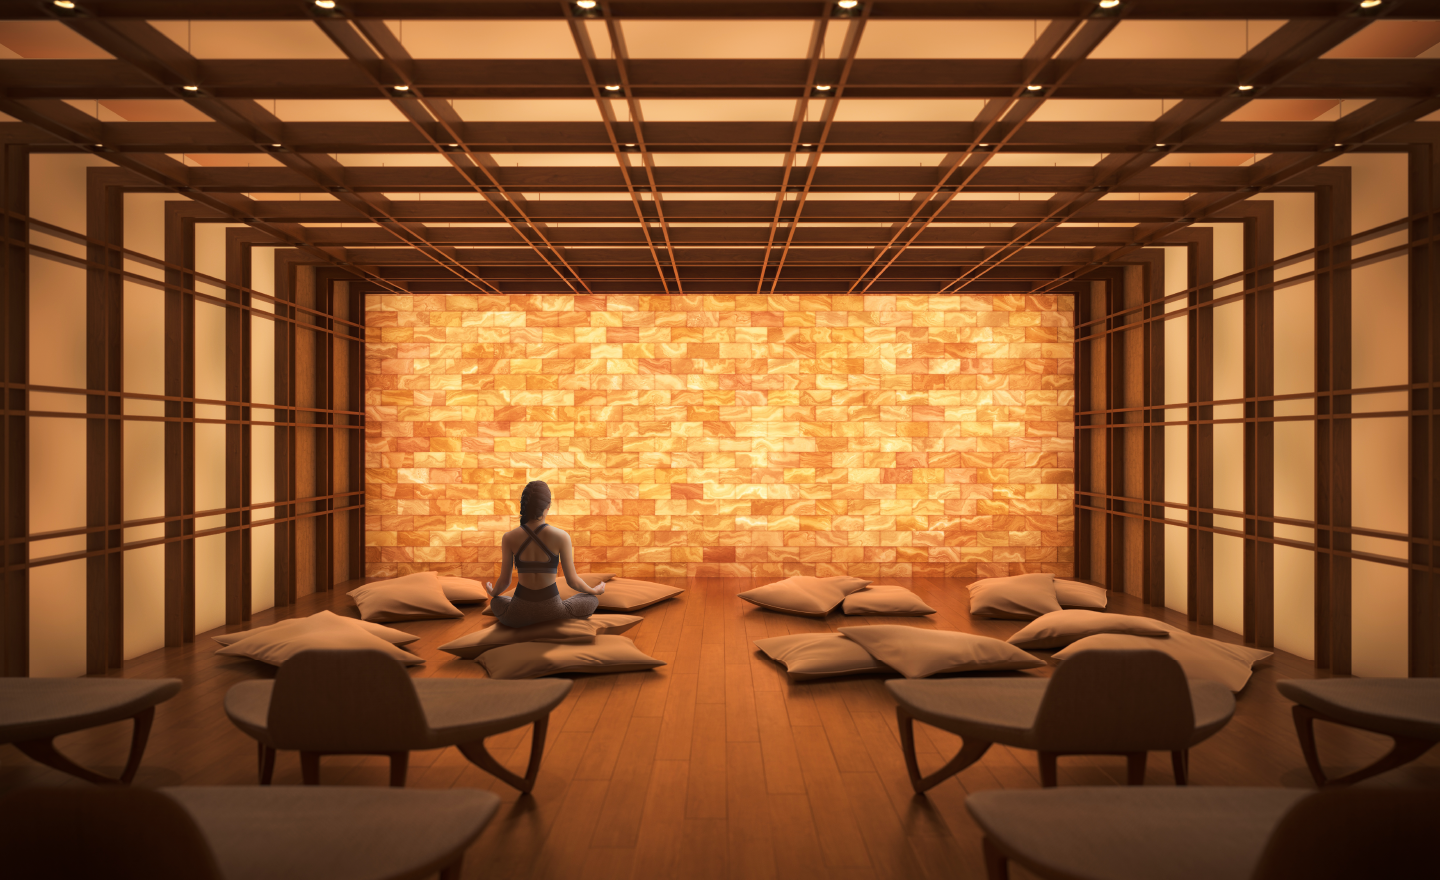 The Saint Condo in Downtown Toronto Features a Salt Meditation Room & More!